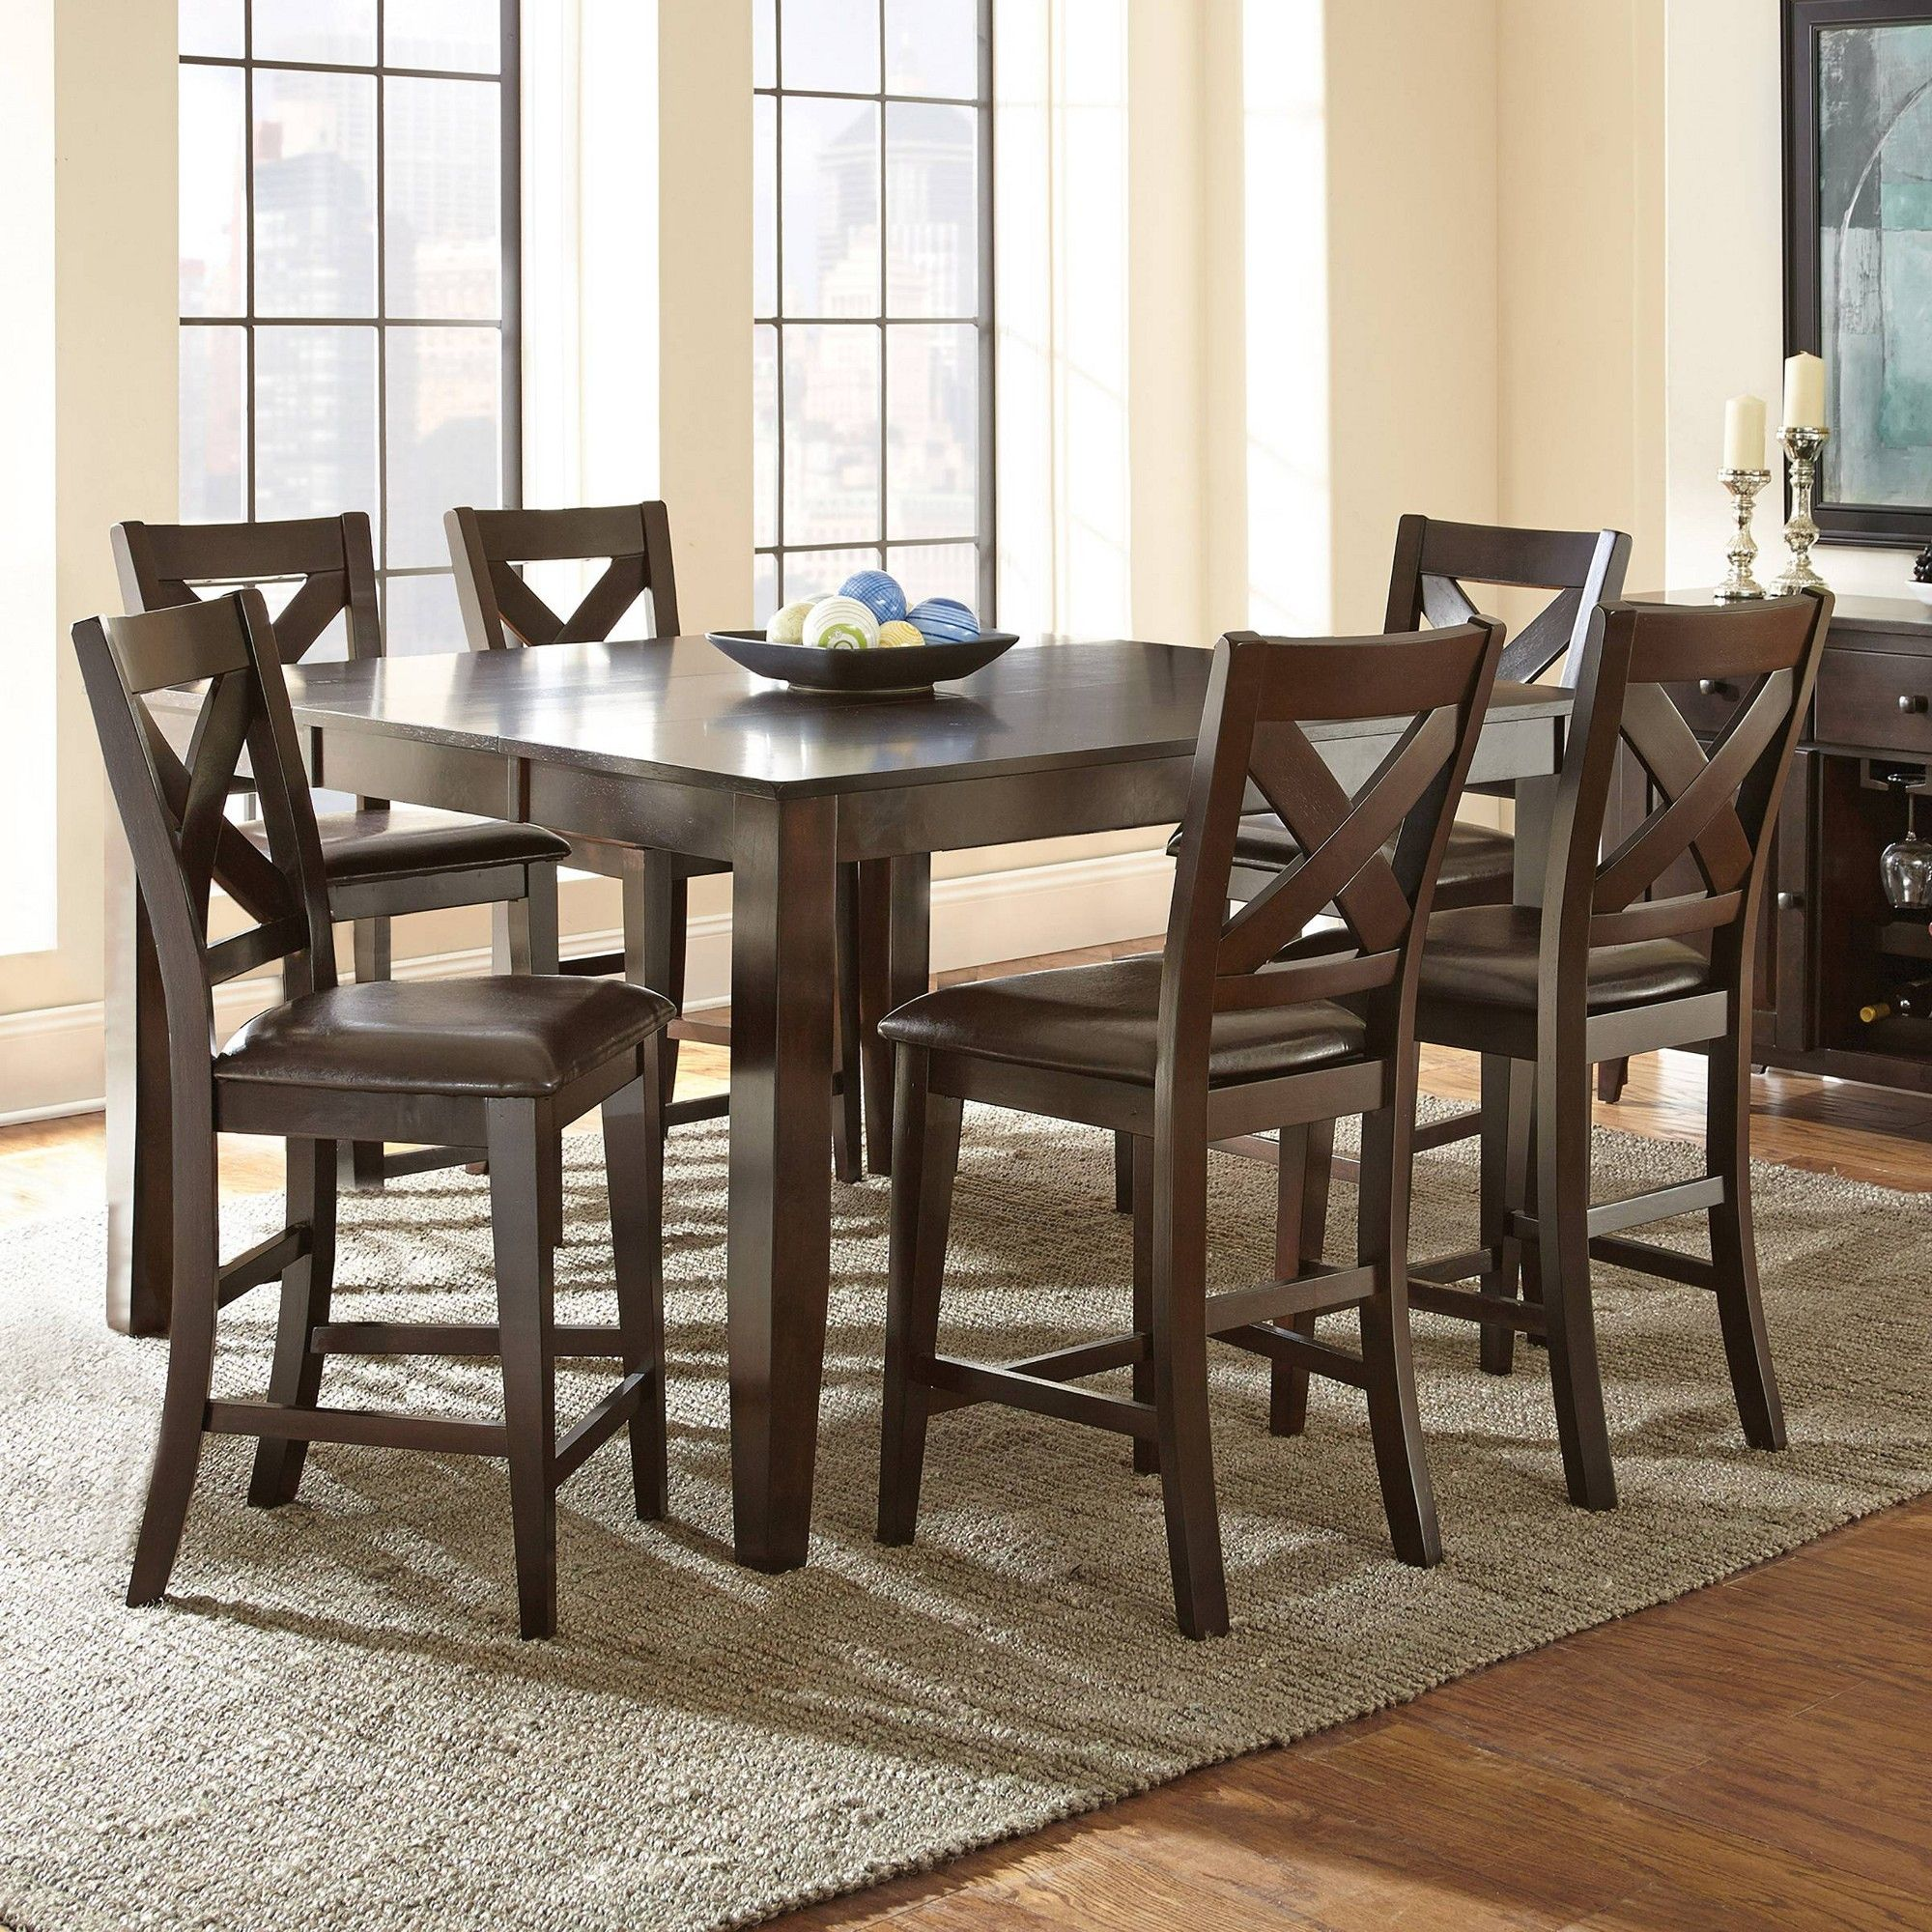 27++ Expandable counter height dining table sets Best Seller